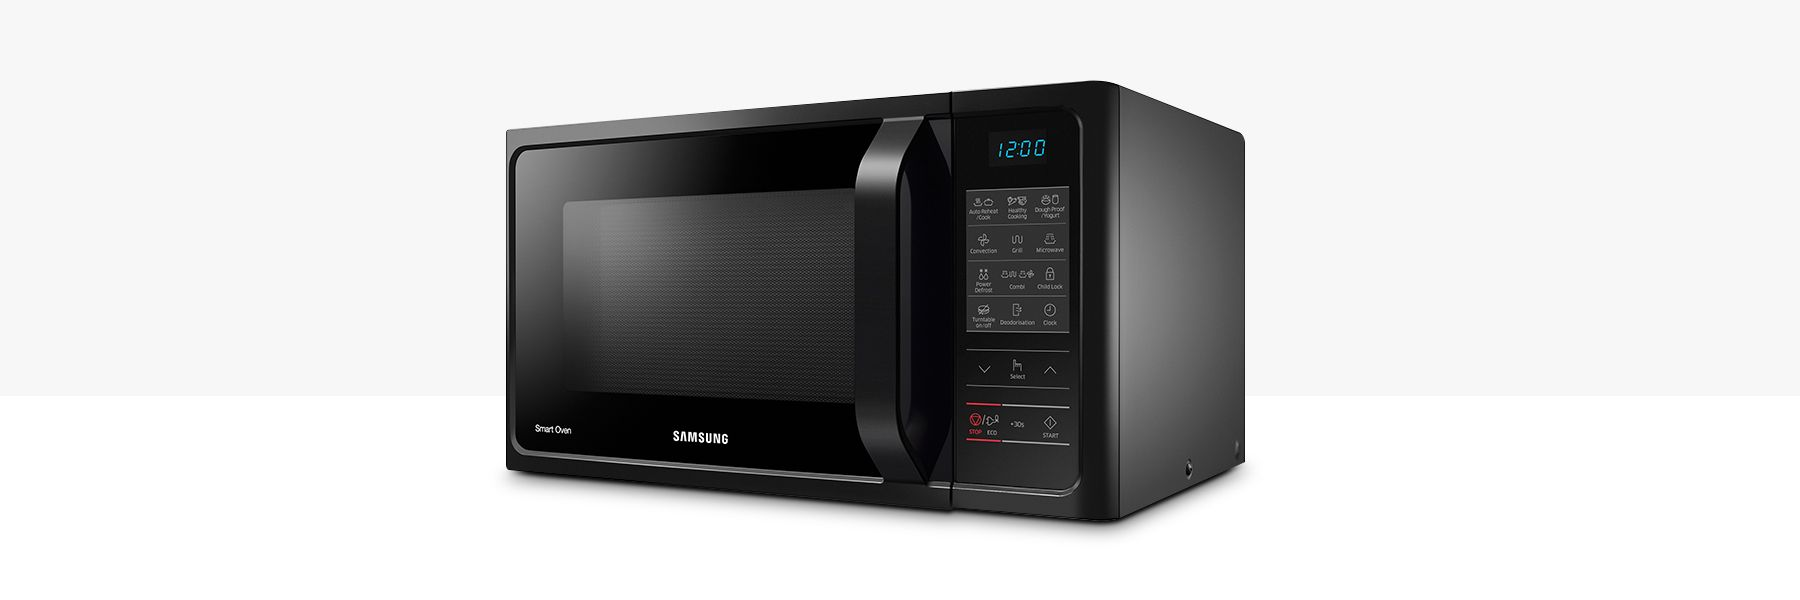 An Example Of A Microwave